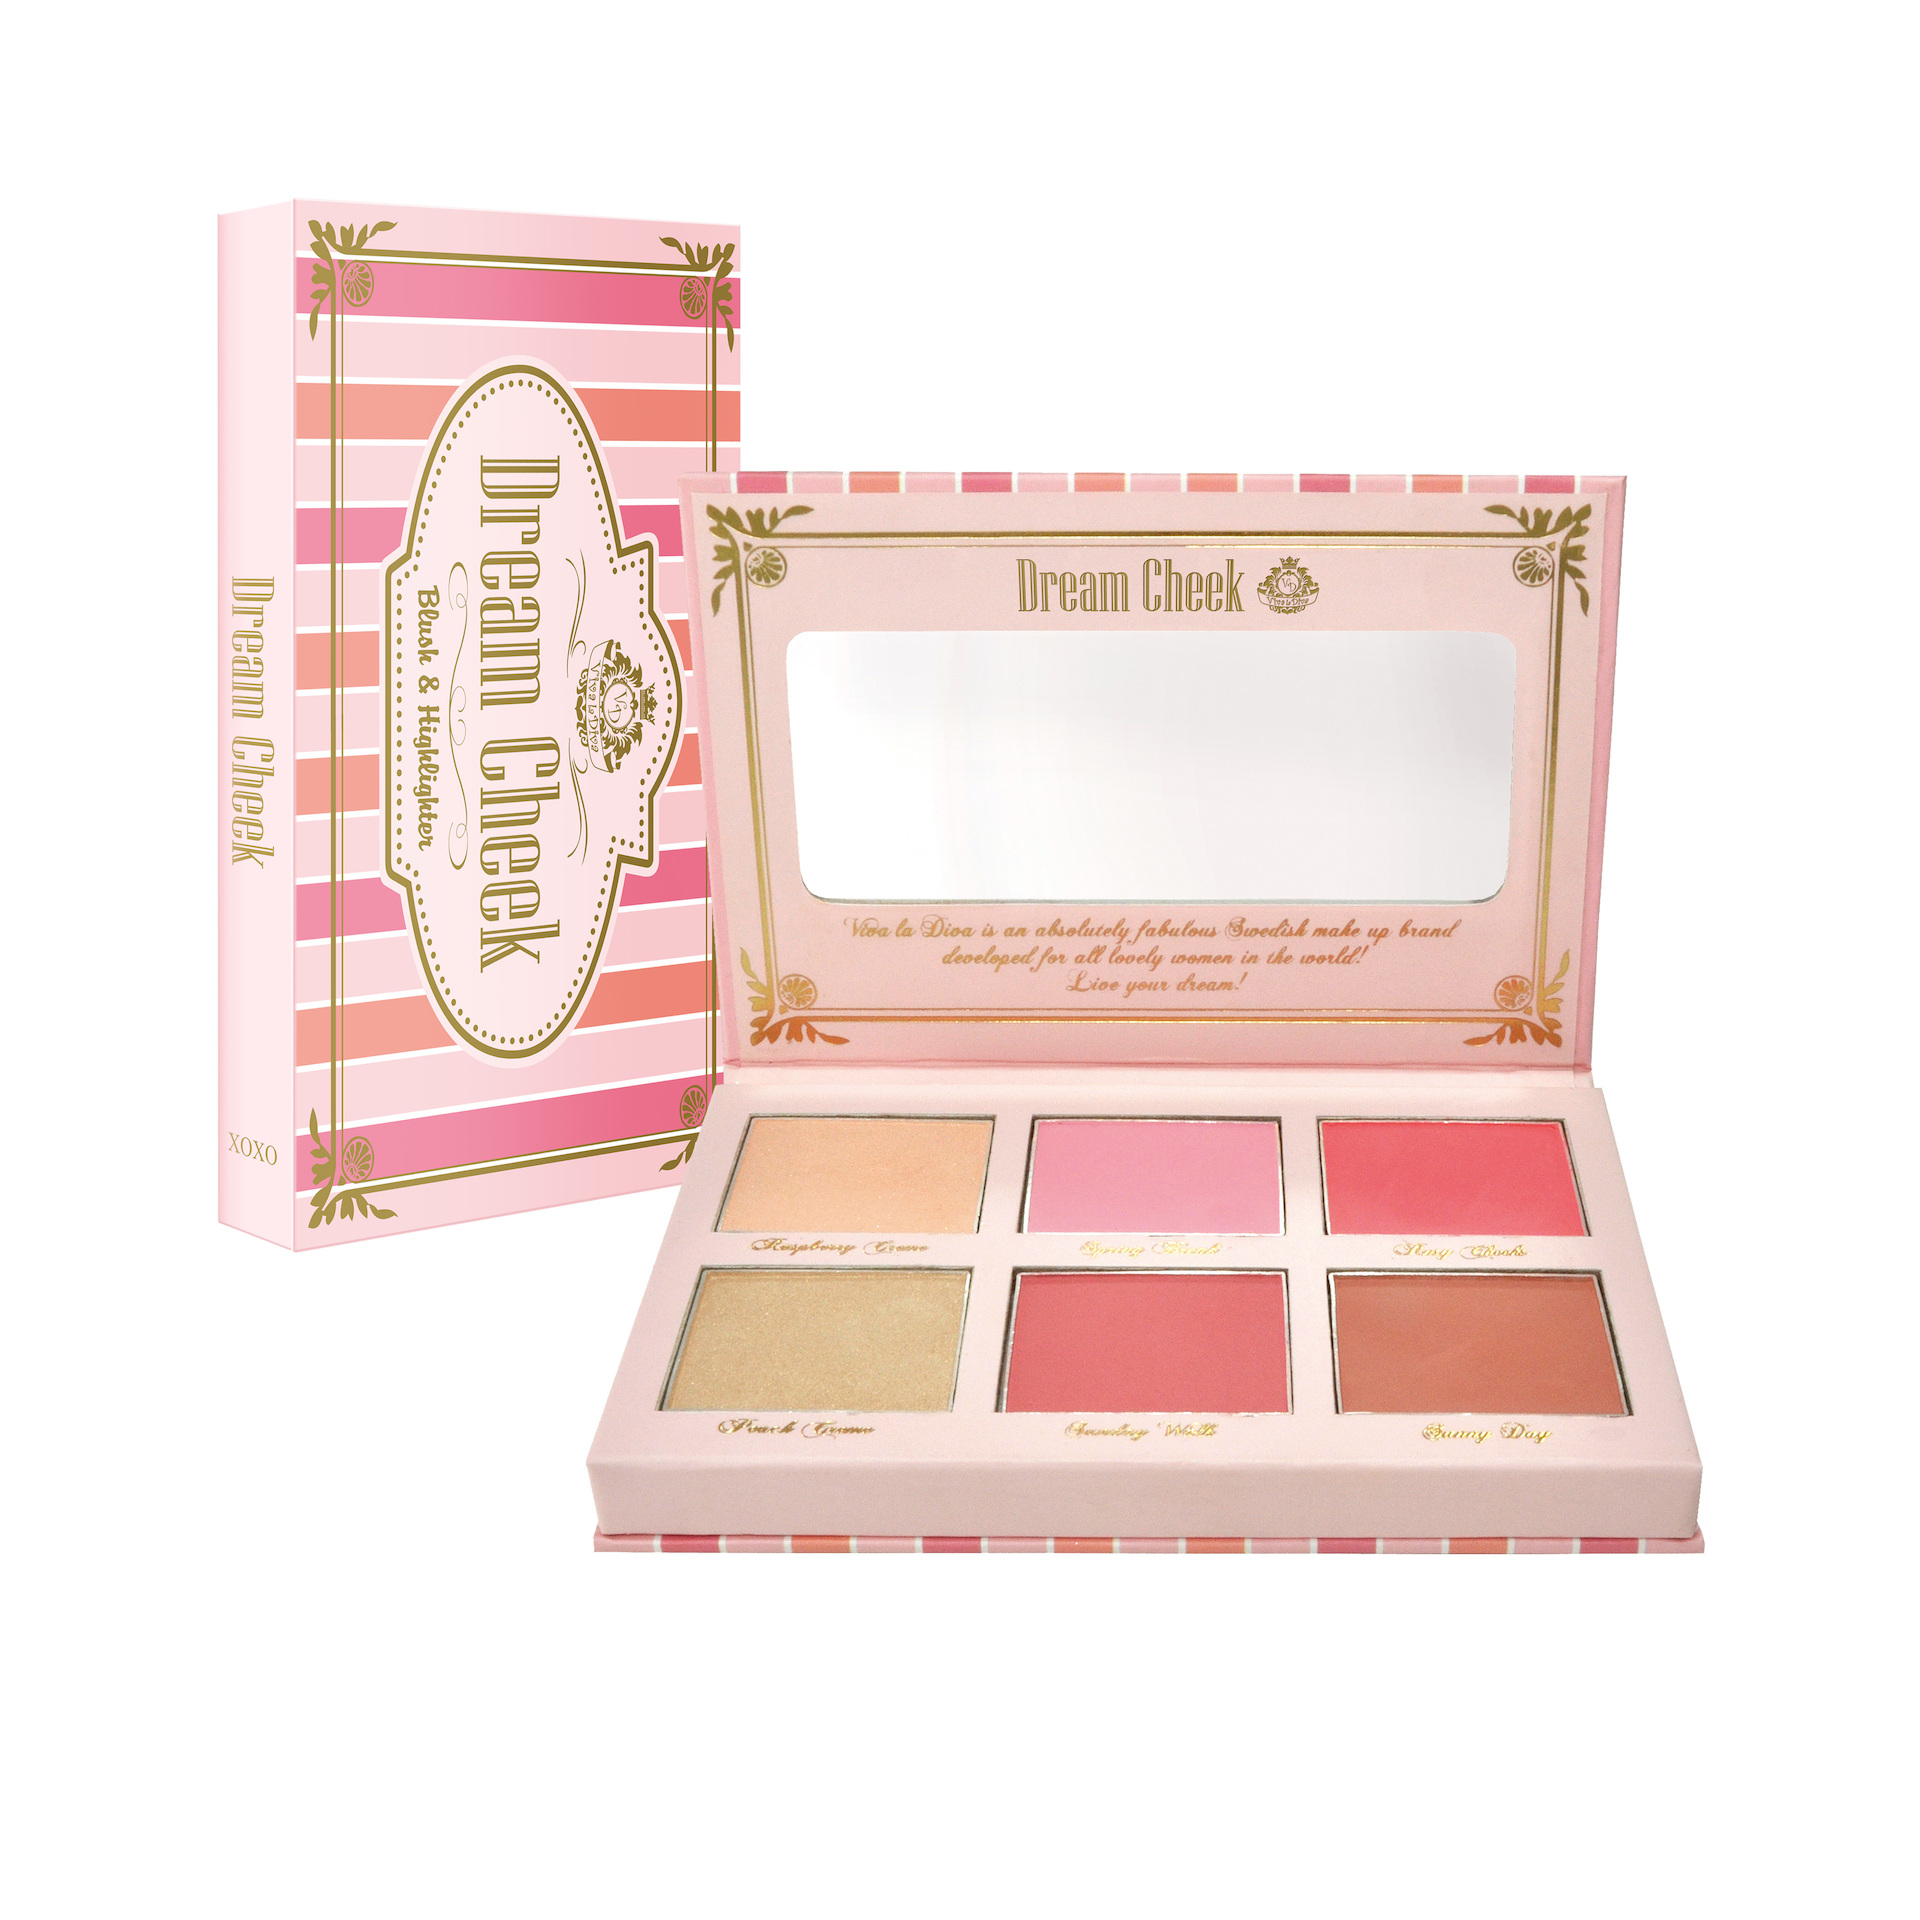 Dream Cheek Blush Palette